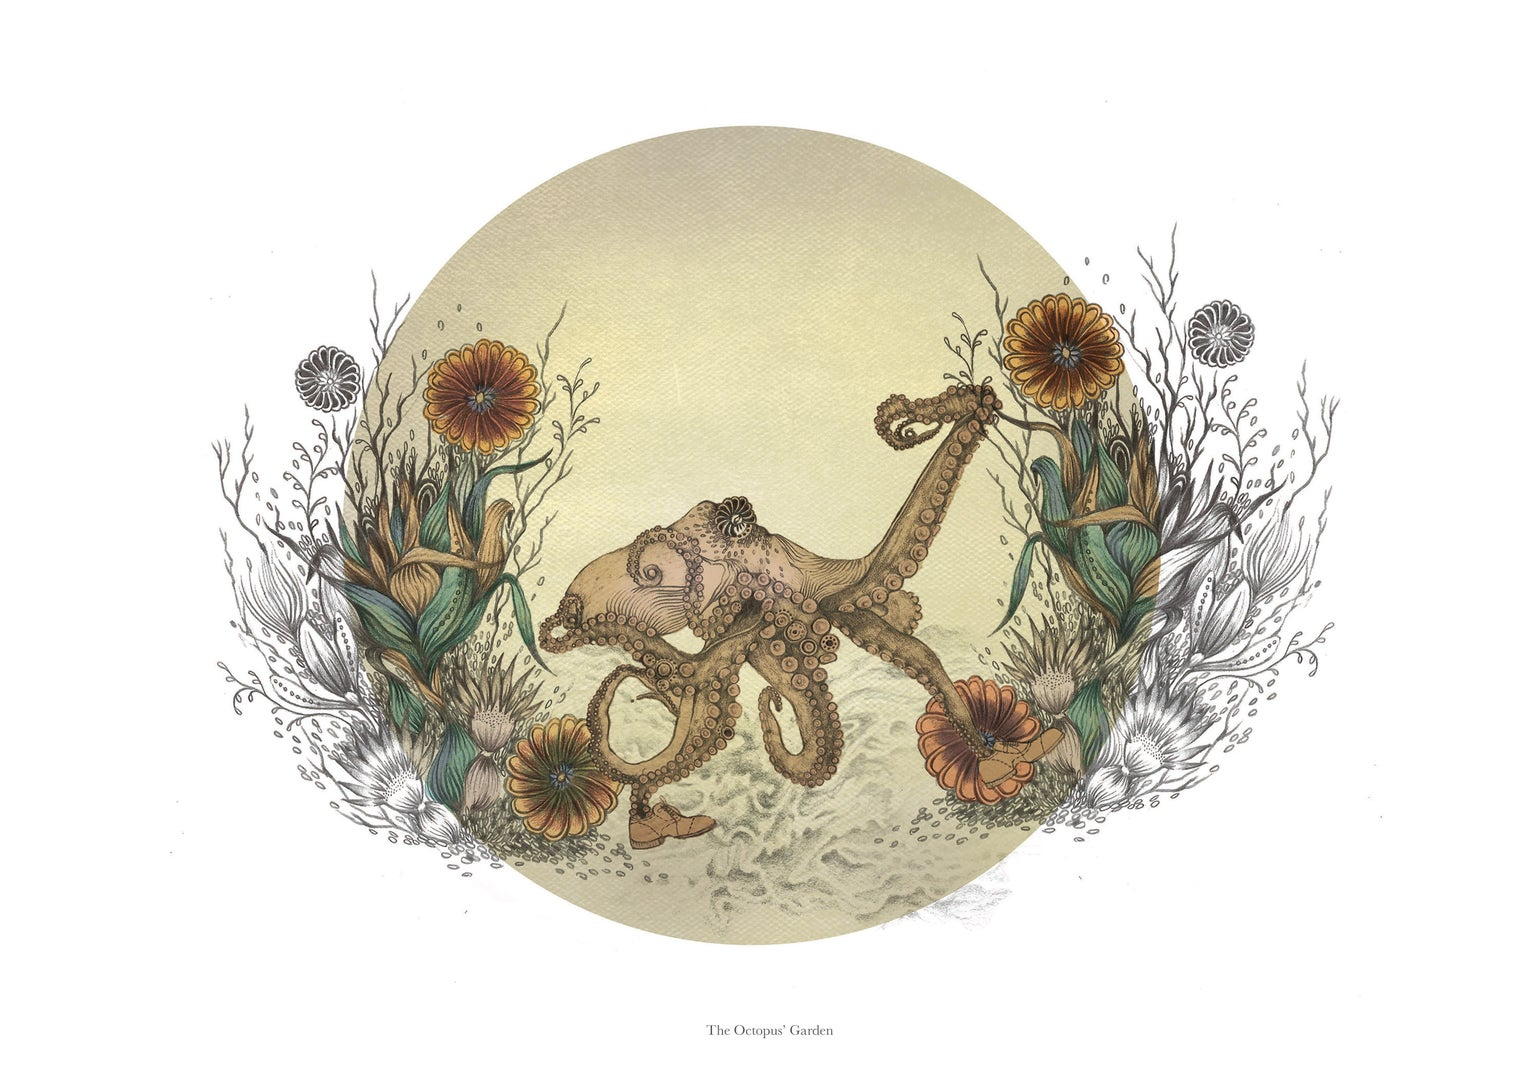 Image of The Octopus' Garden